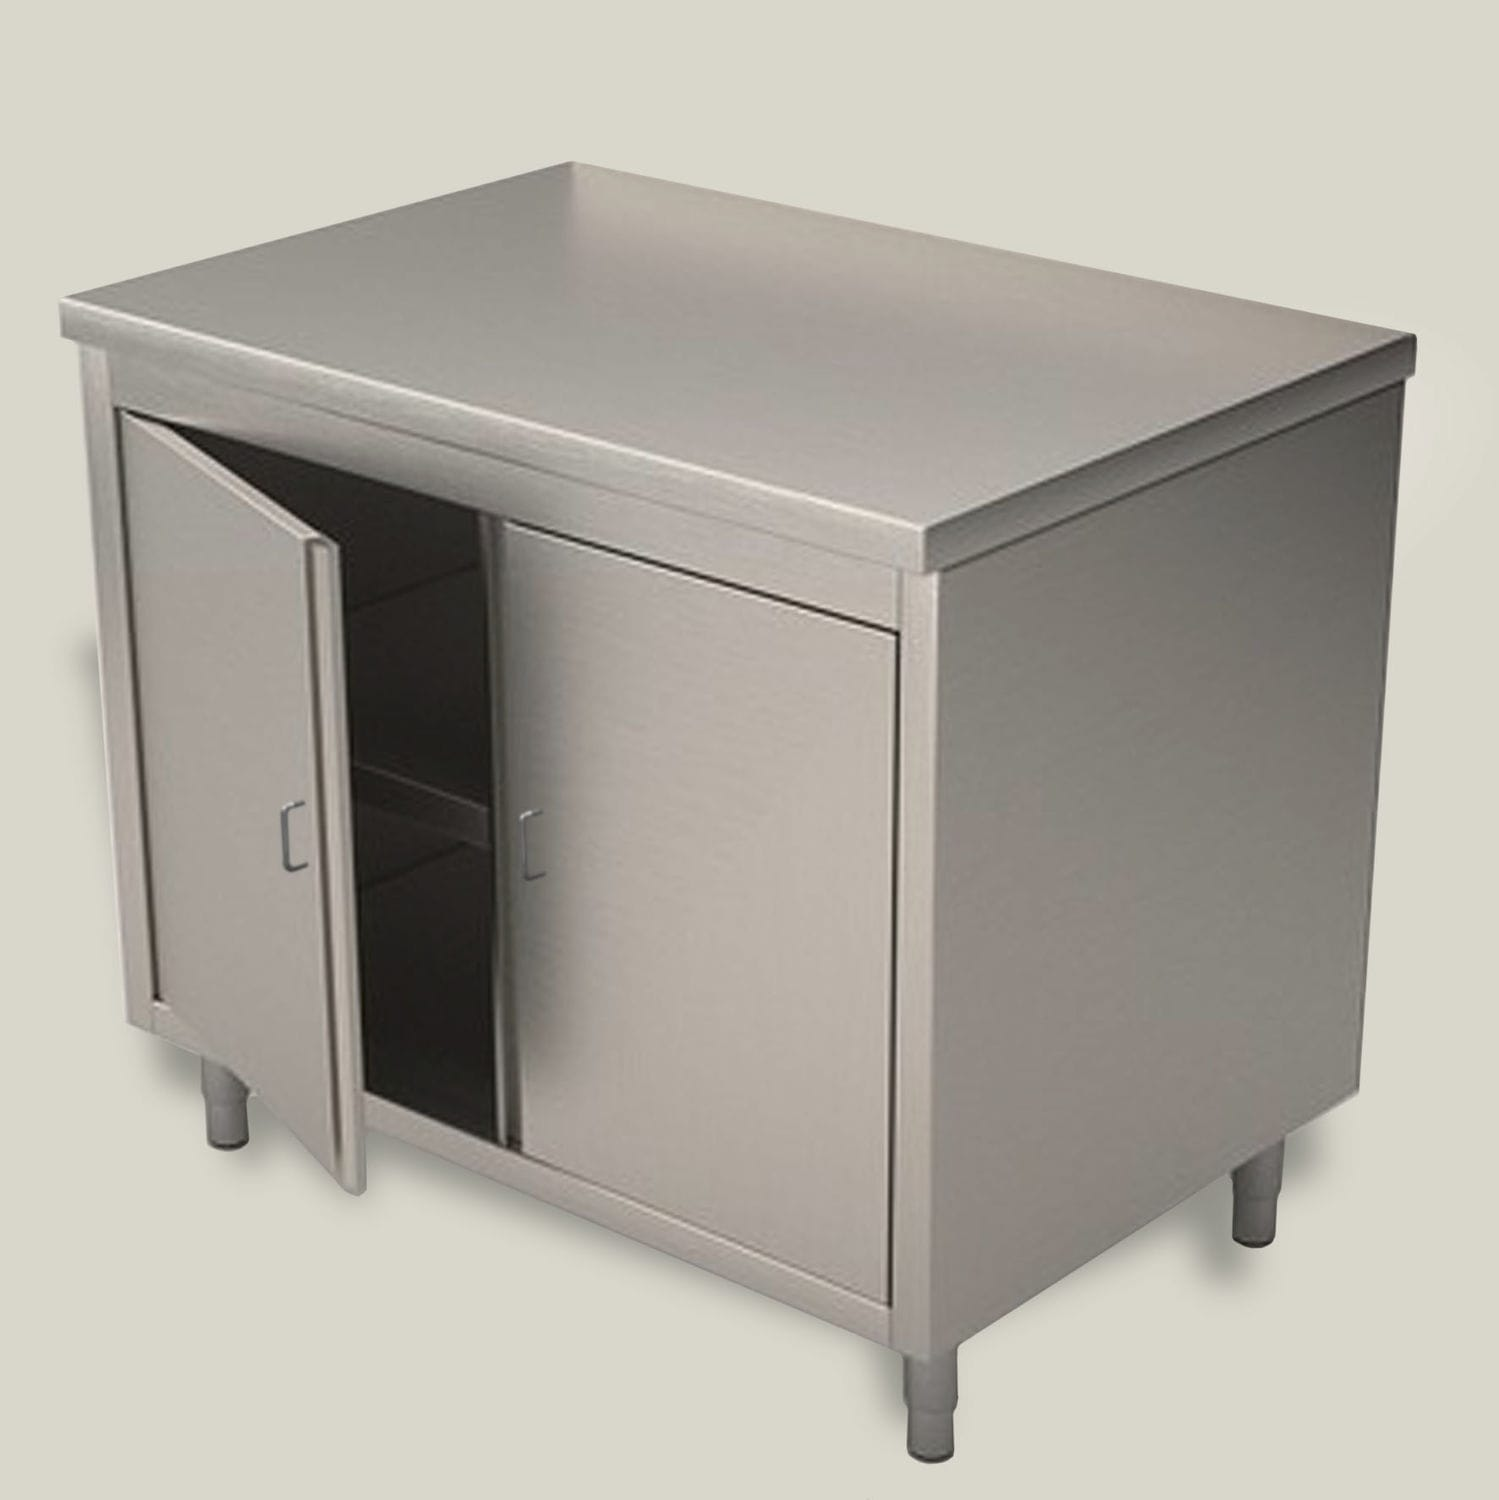 Cabinet With Shelf / With Hinged Door / Stainless Steel   FR300, FR310